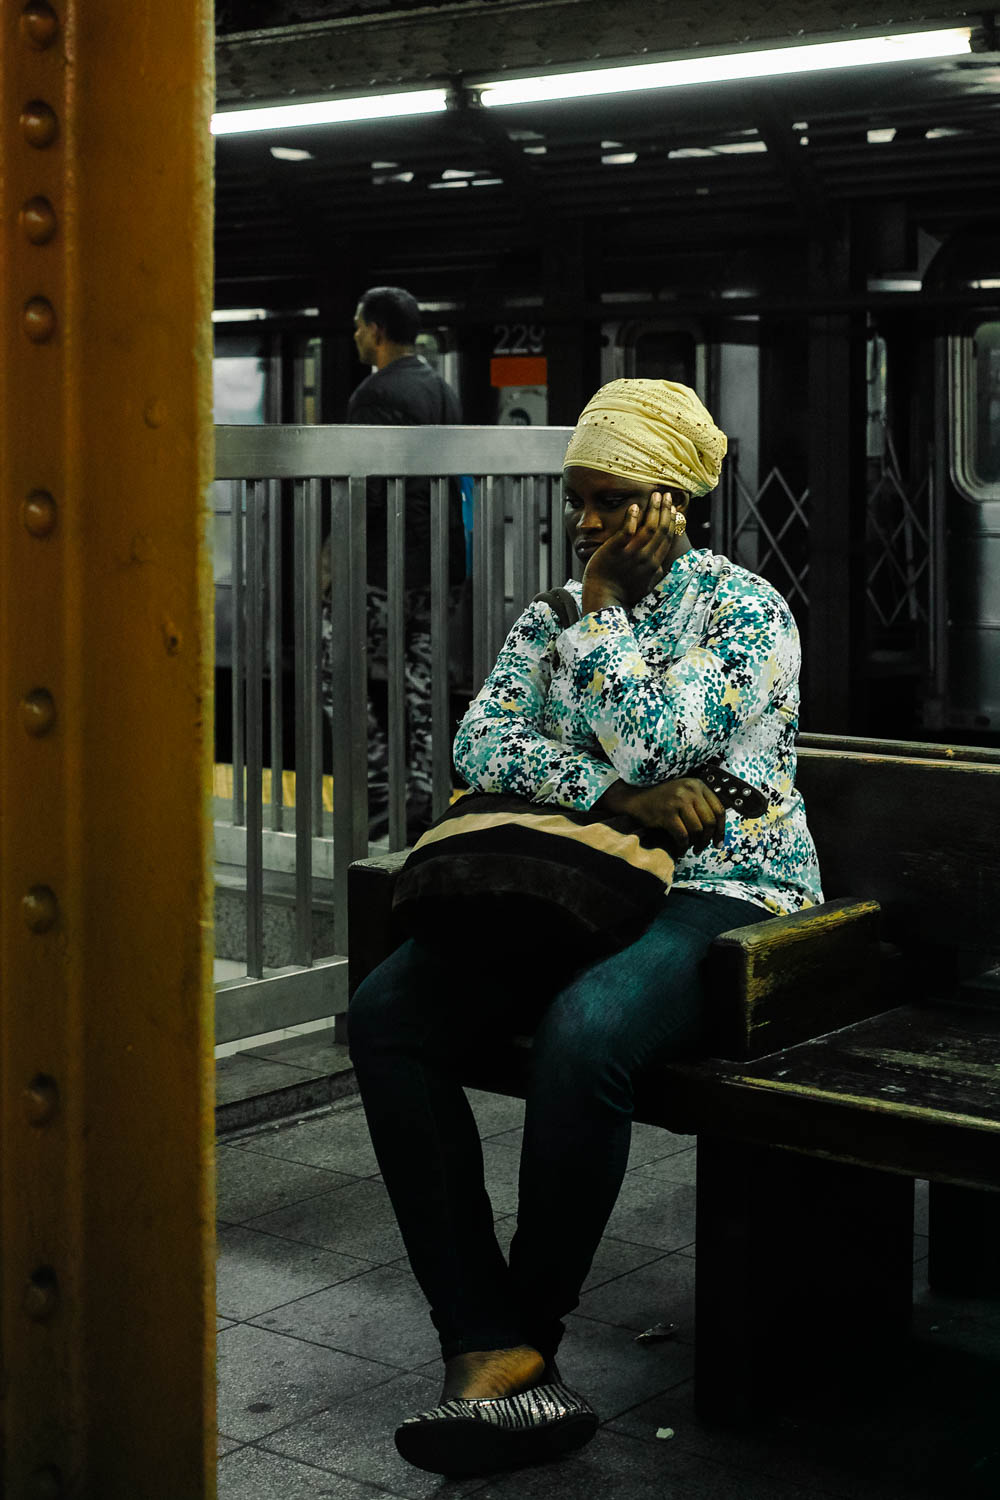 A woman waiting for the train in Times Square. Sigma DP2 Merrill, 1/60 f/2.8 ISO 200